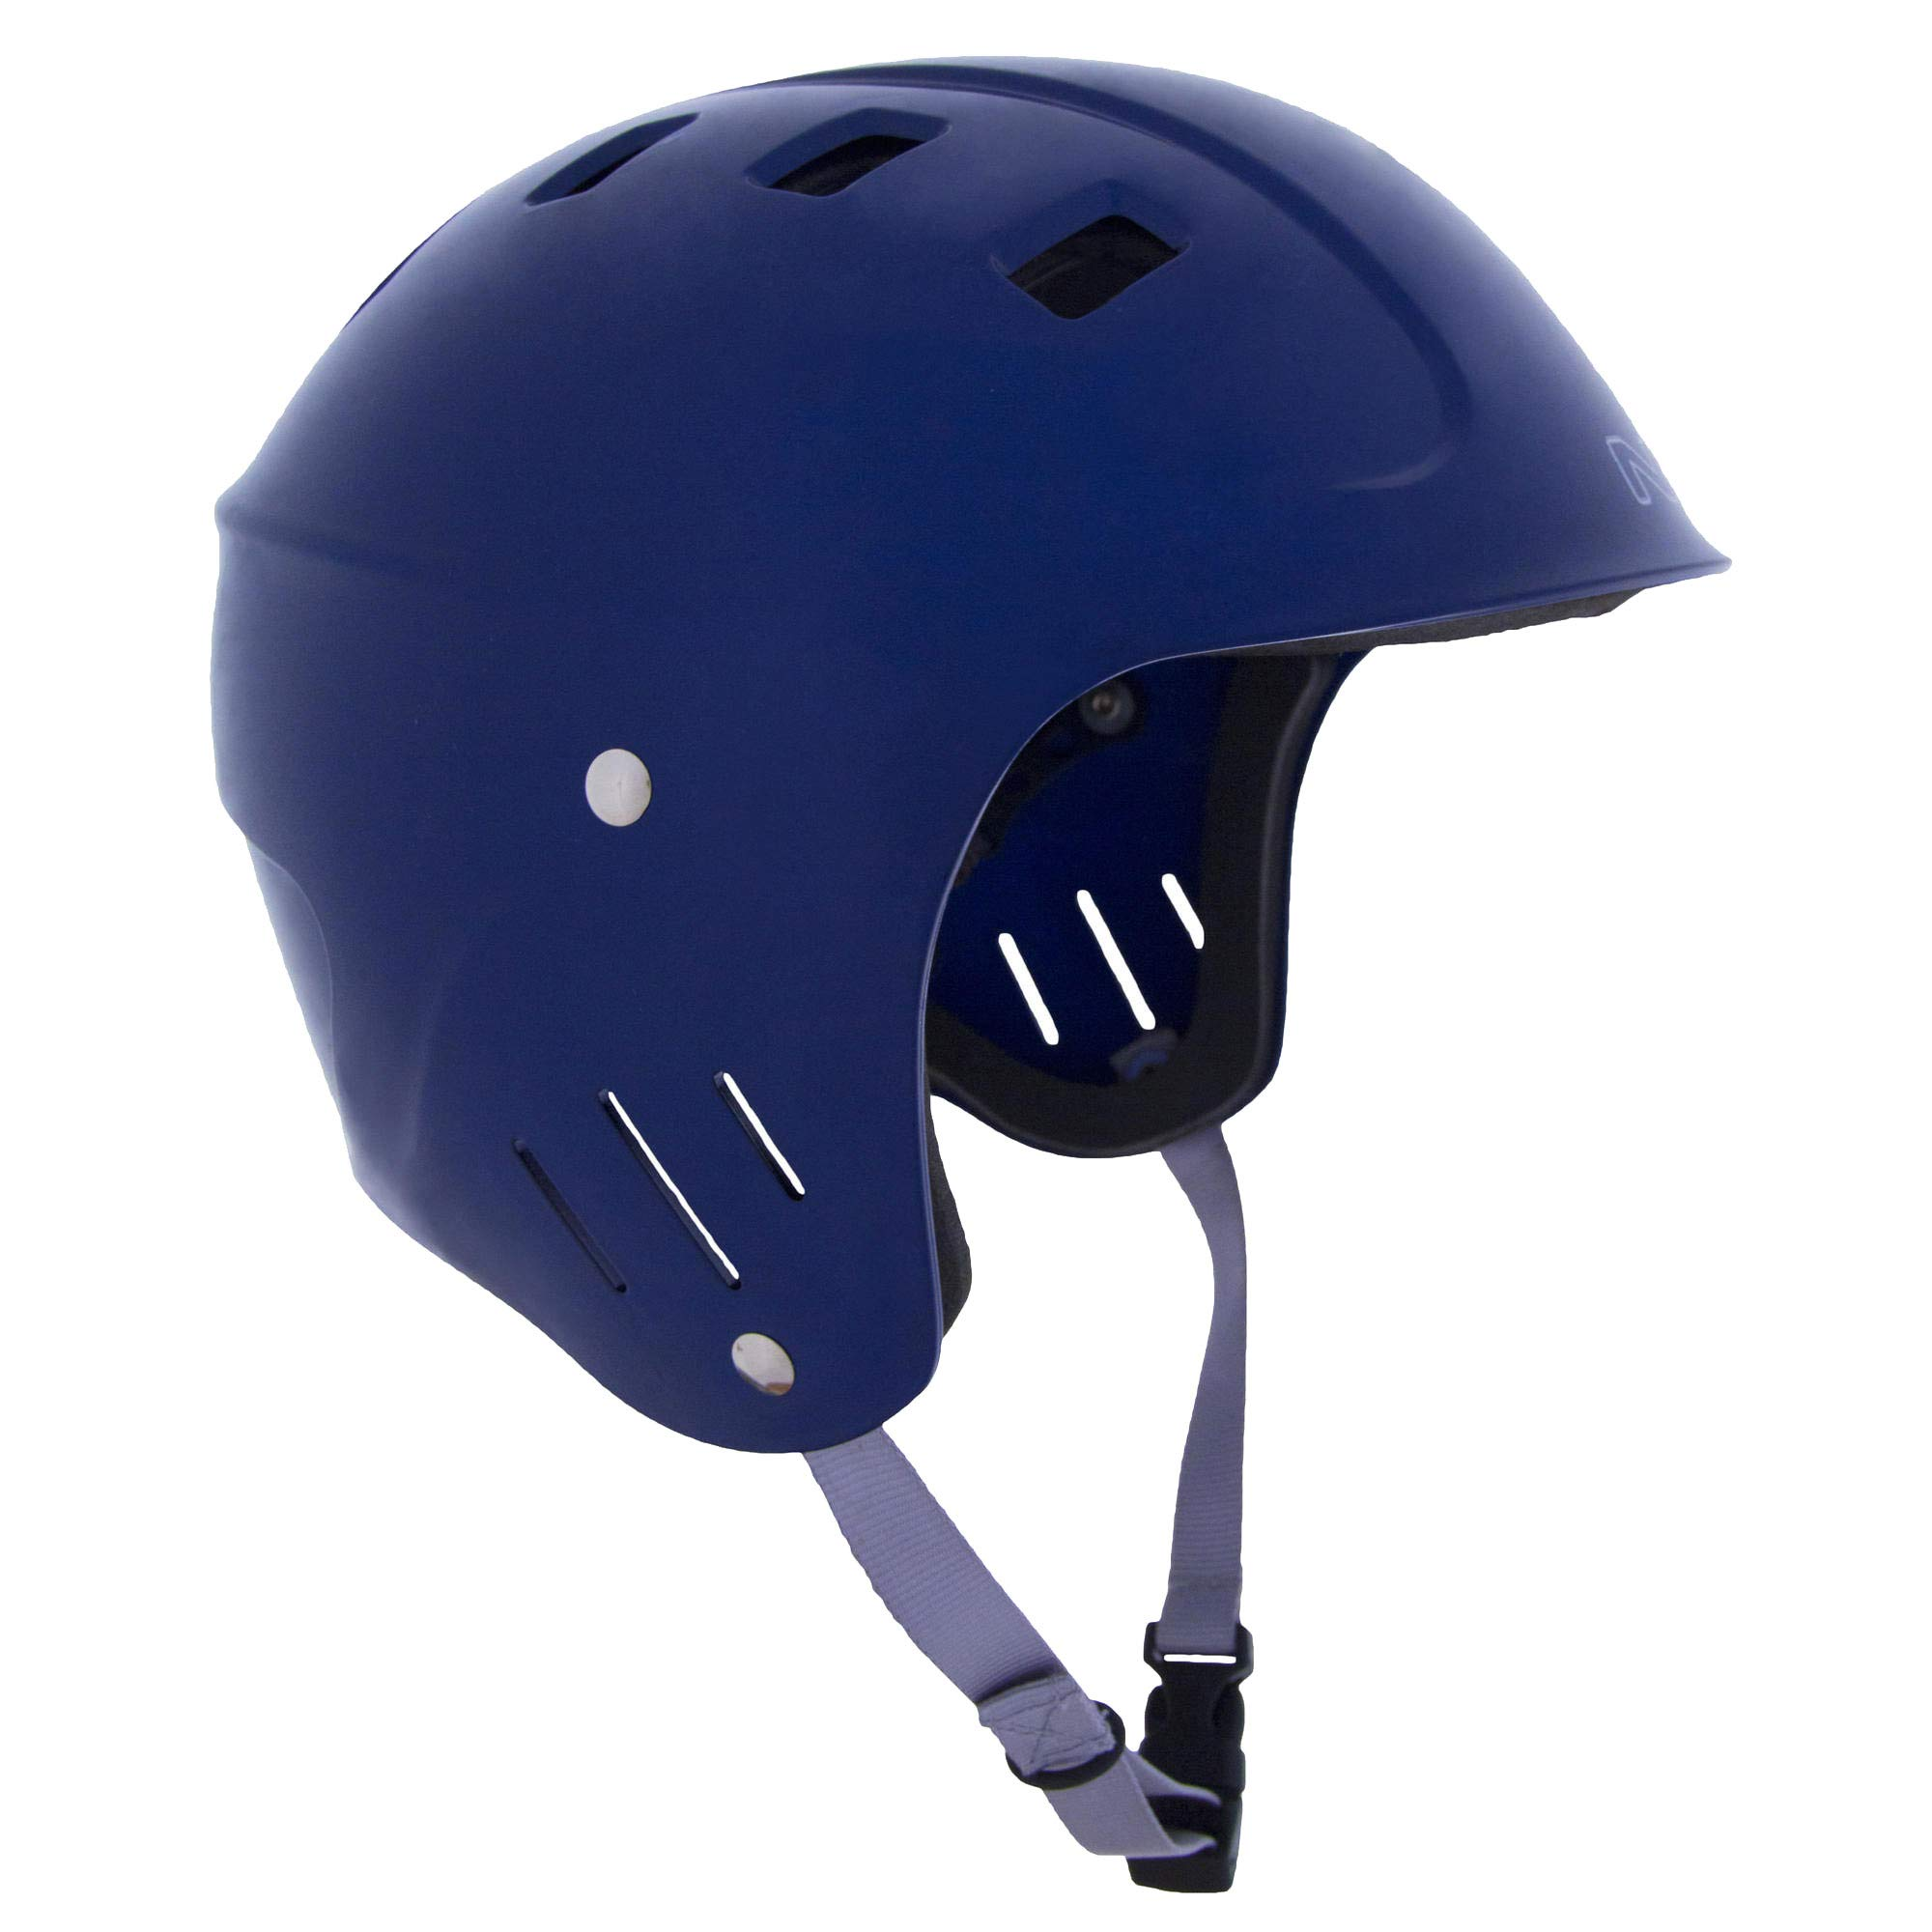 NRS Chaos Helmet - Full Cut Blue Large by NRS